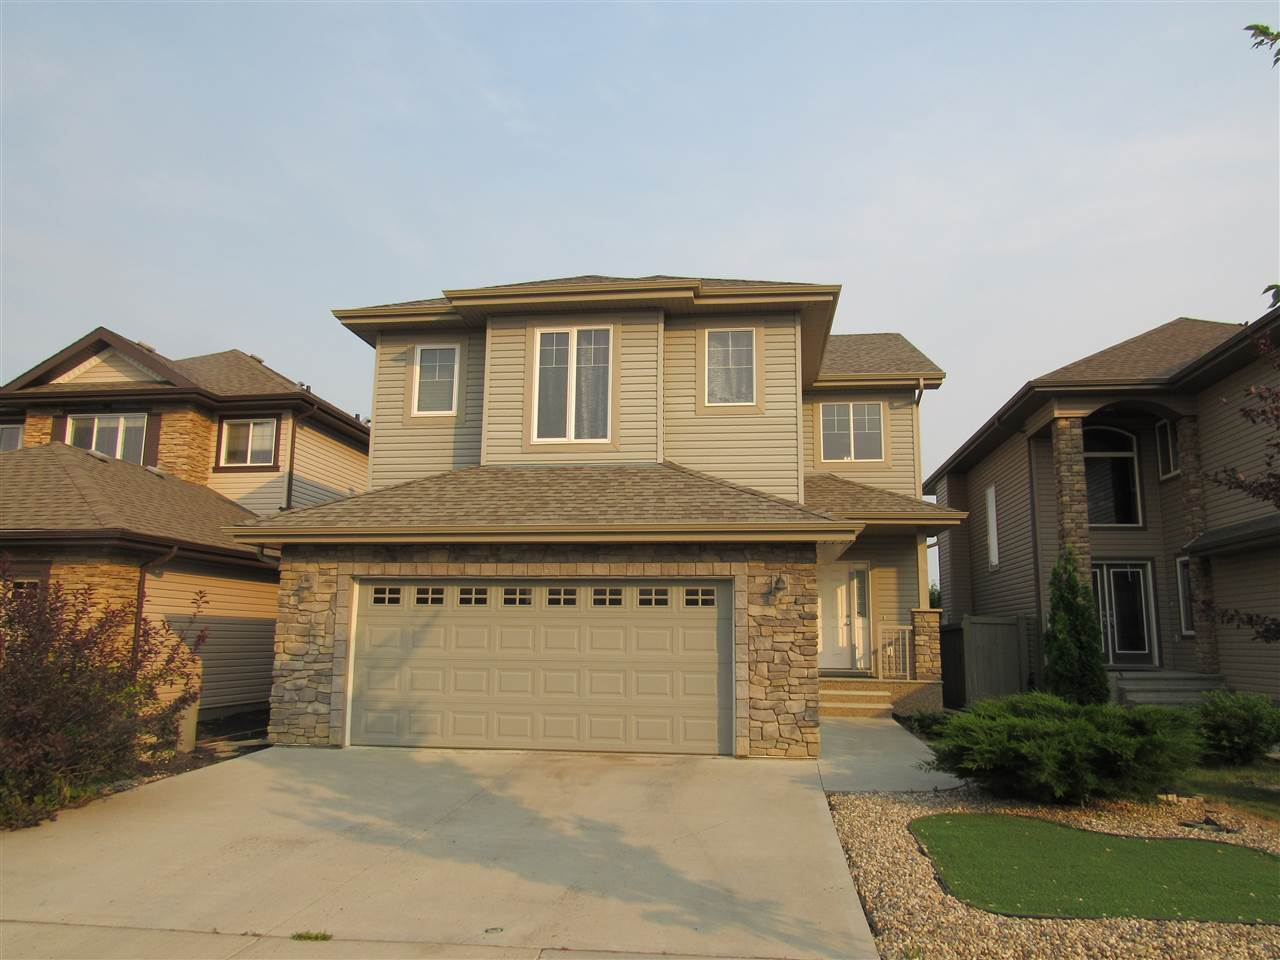 Photo 1: 1020 CONNELLY Way in Edmonton: Zone 55 House for sale : MLS® # E4075955